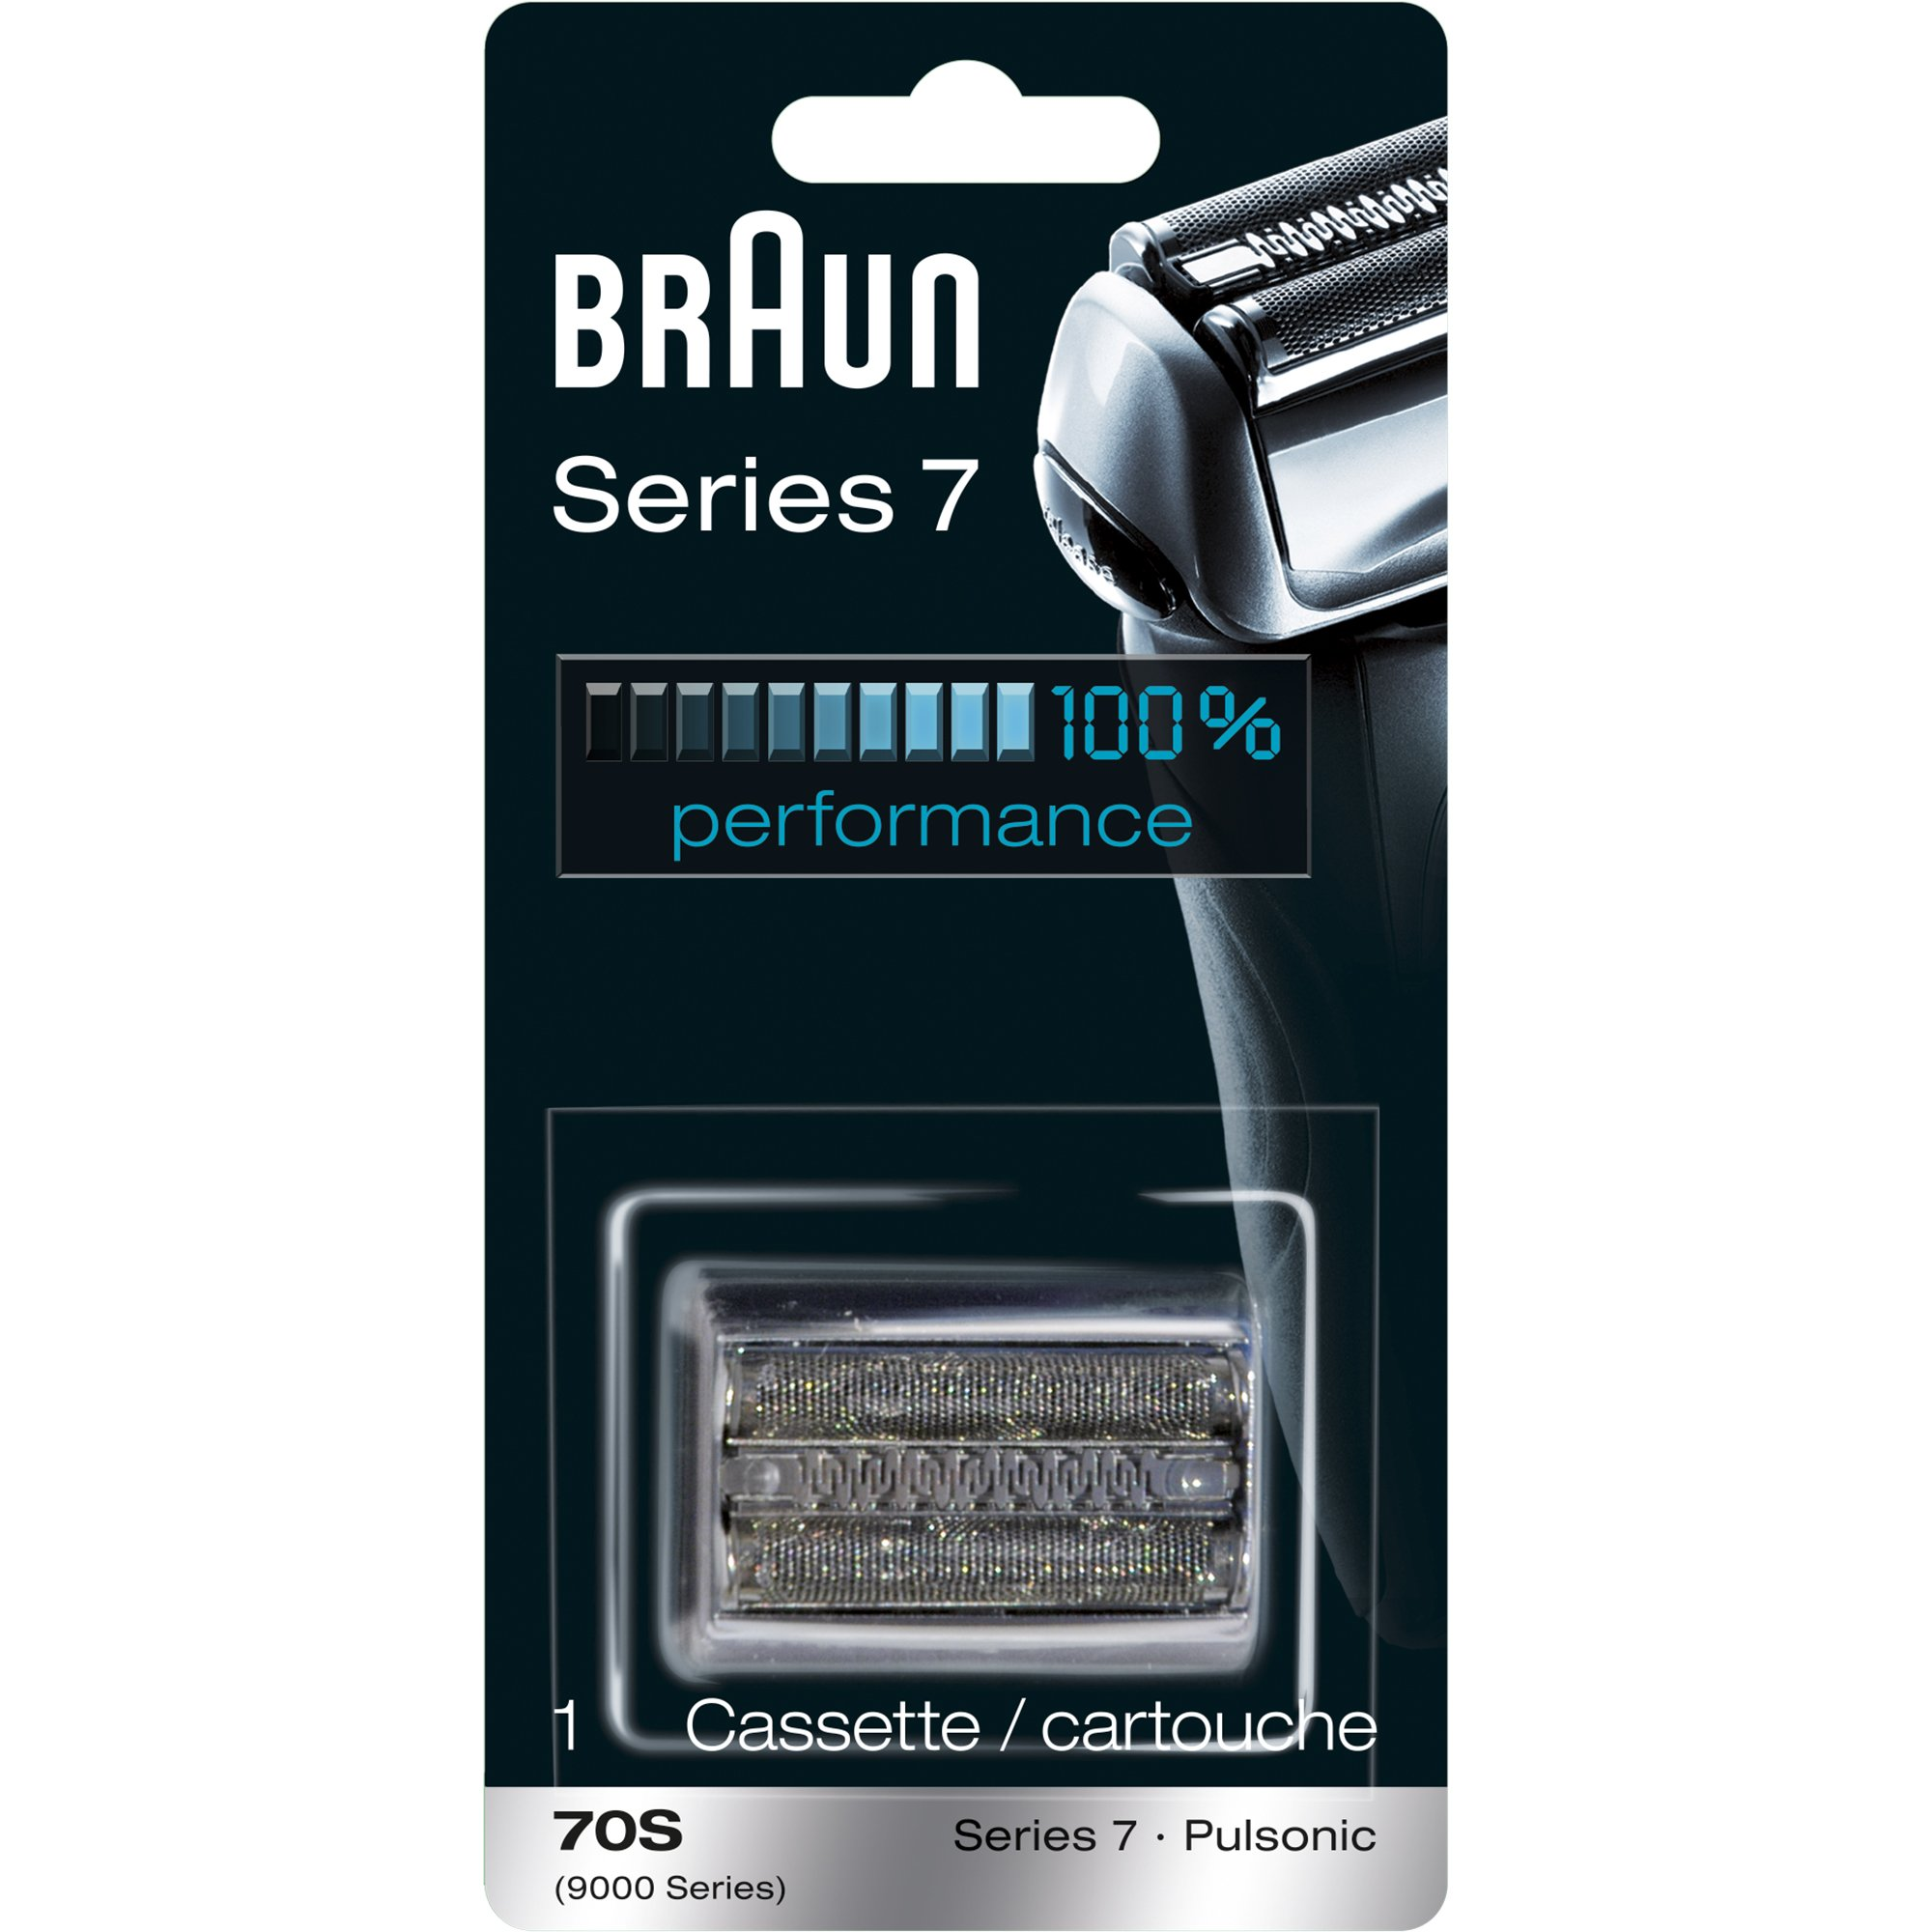 Braun Series 7-70S Replacement part (Silver) product image